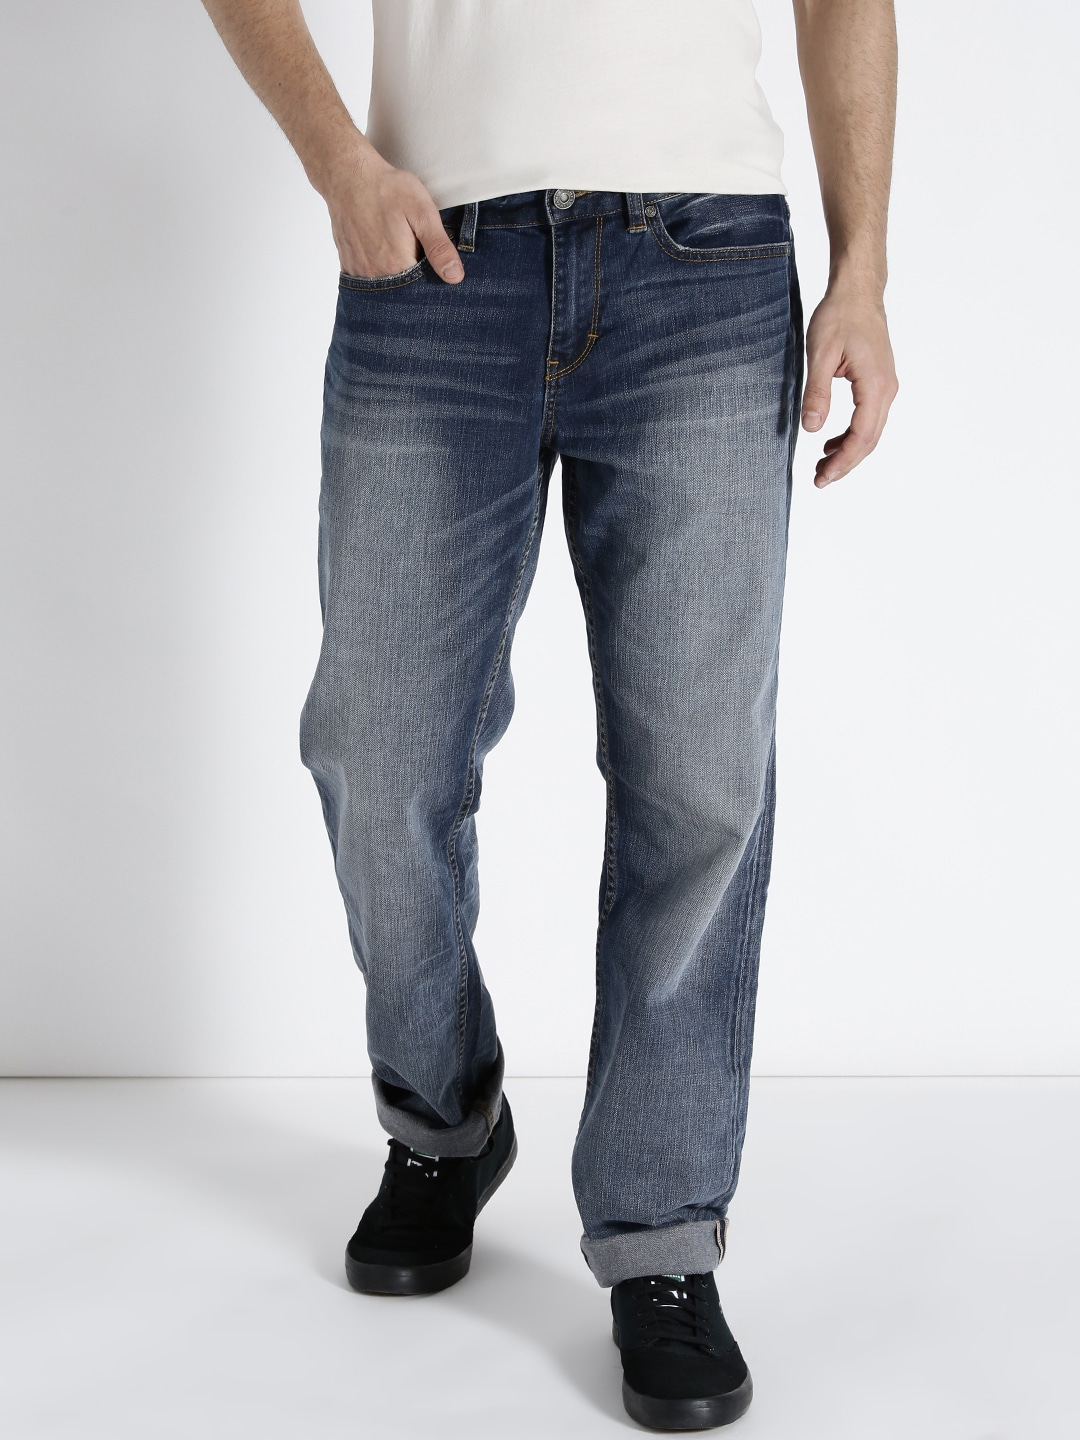 s.Oliver Men Blue Relaxed Fit Mid-Rise Clean Look Jeans image